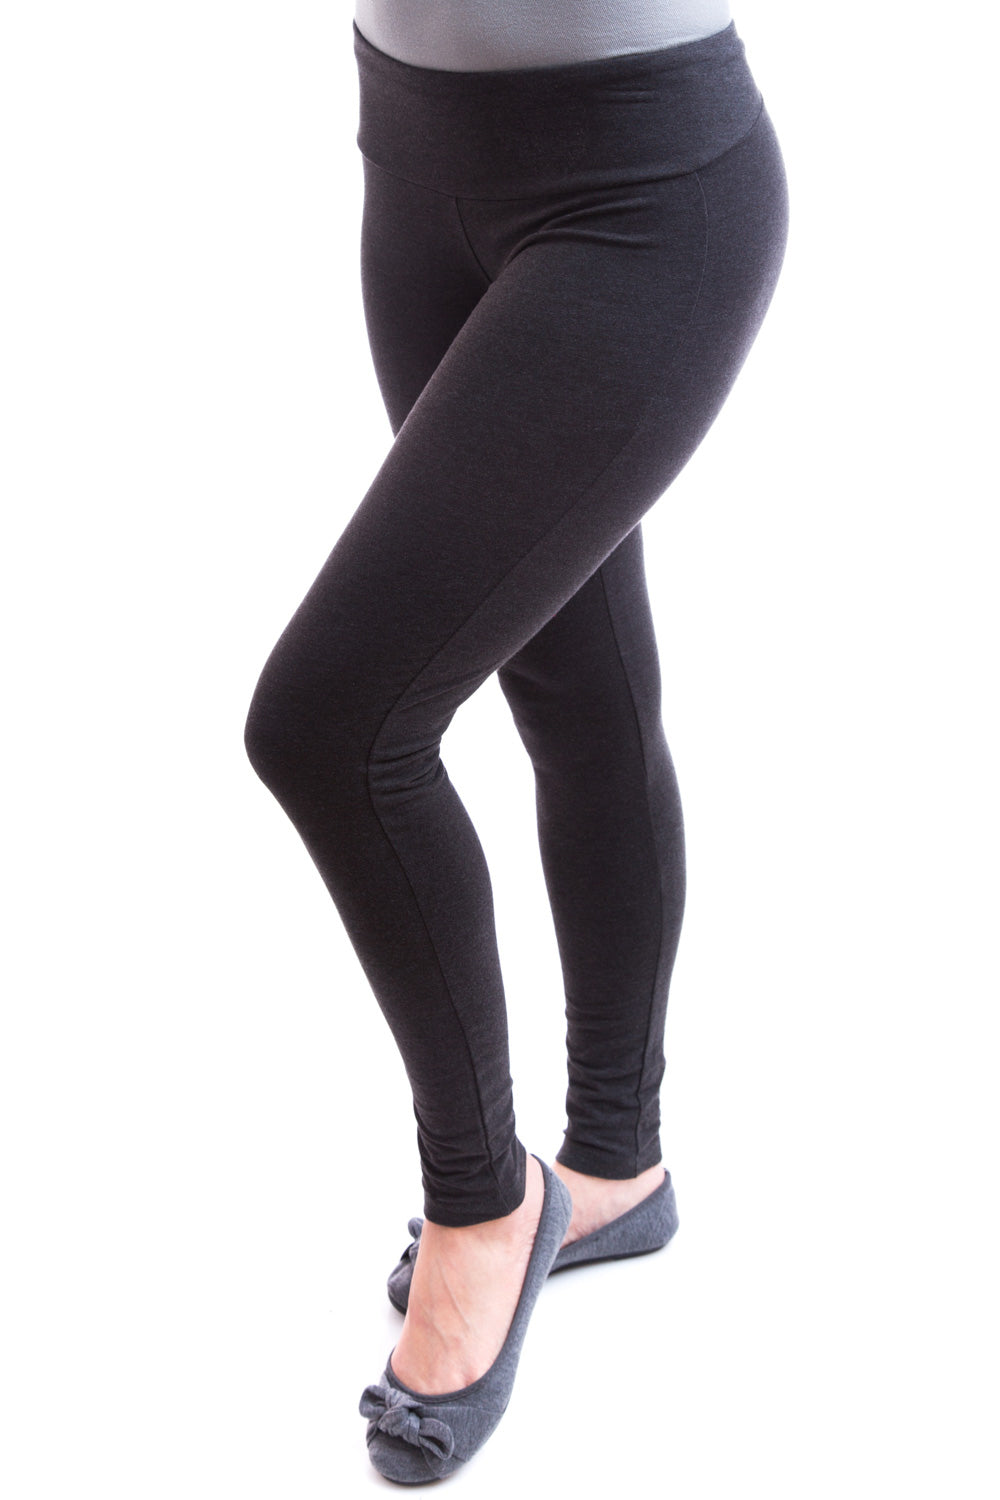 Type 2 Perfect Shape Slimming Leggings In Charcoal